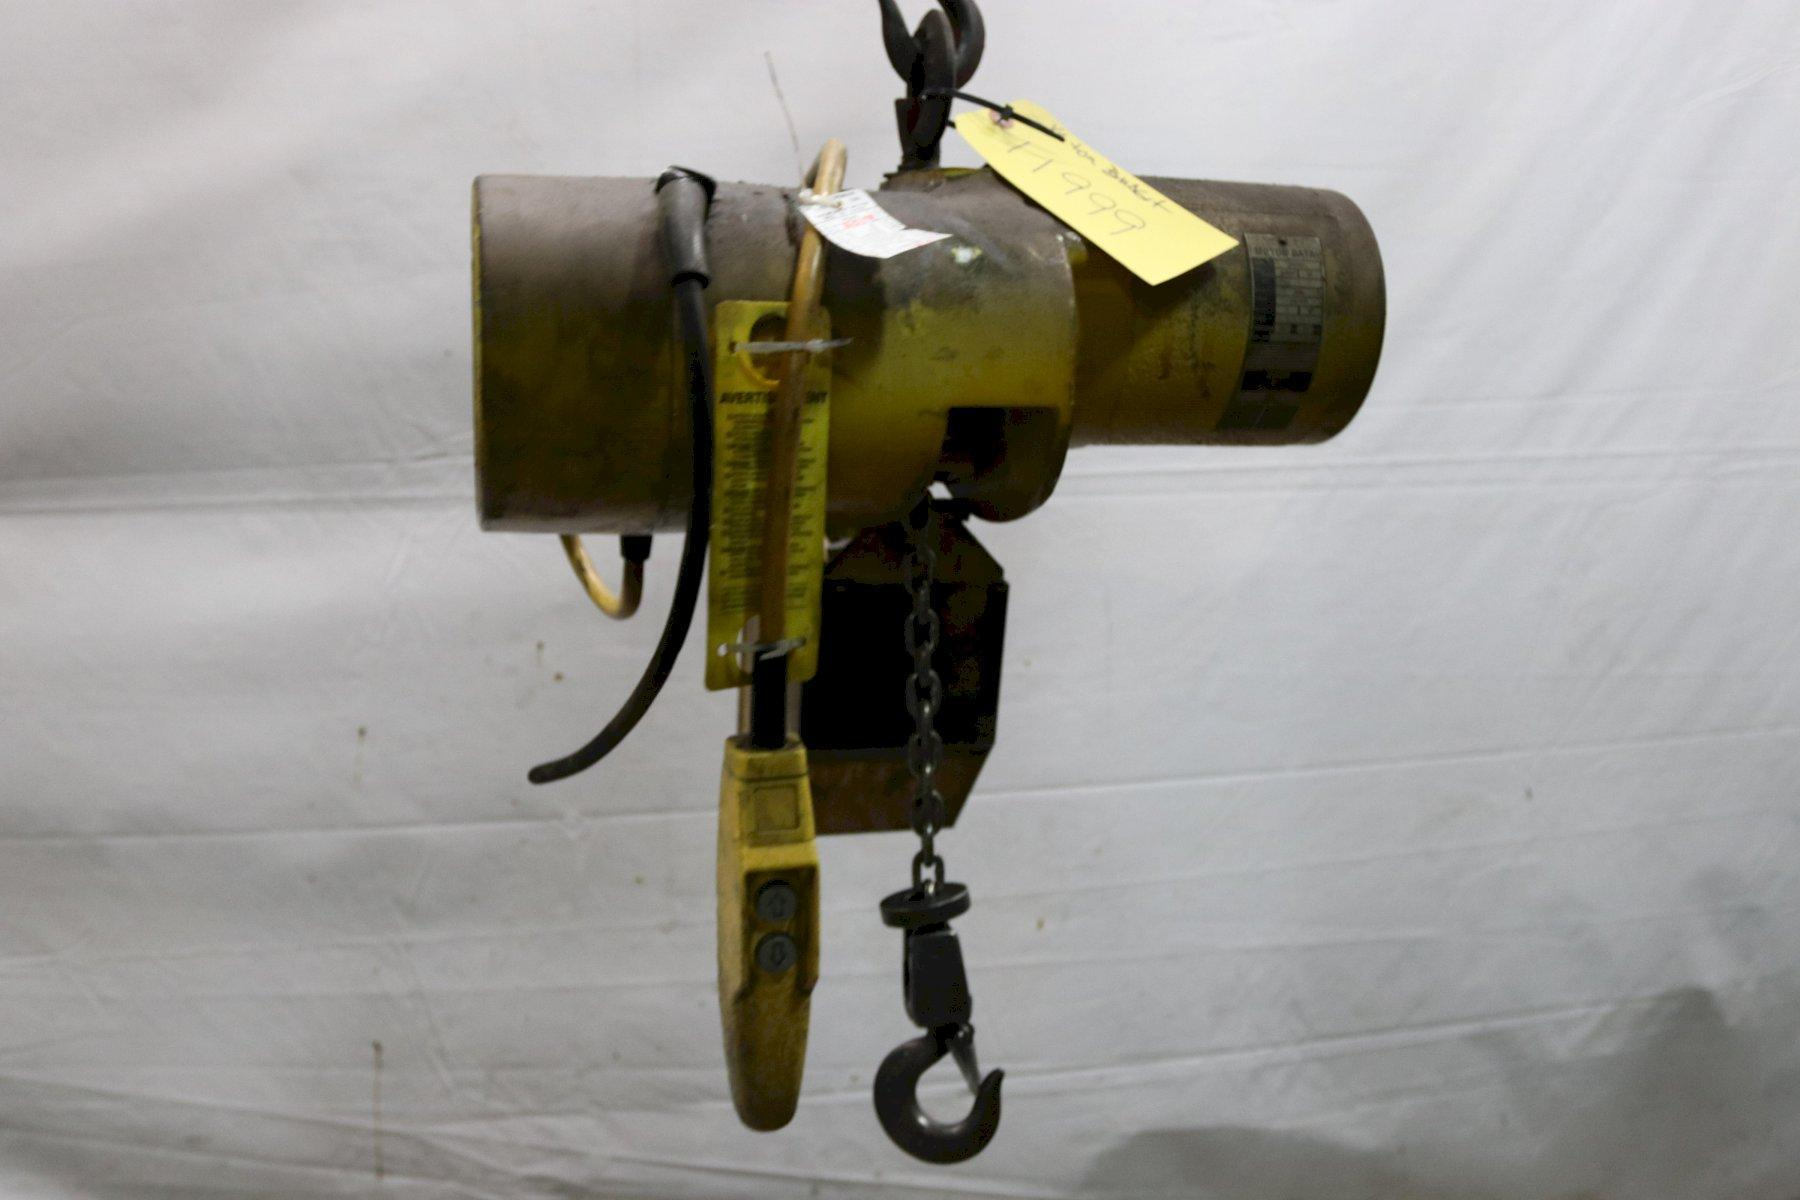 1/4 TON BUDGIT ELECTRIC POWERED CHAIN HOIST: STOCK #11999